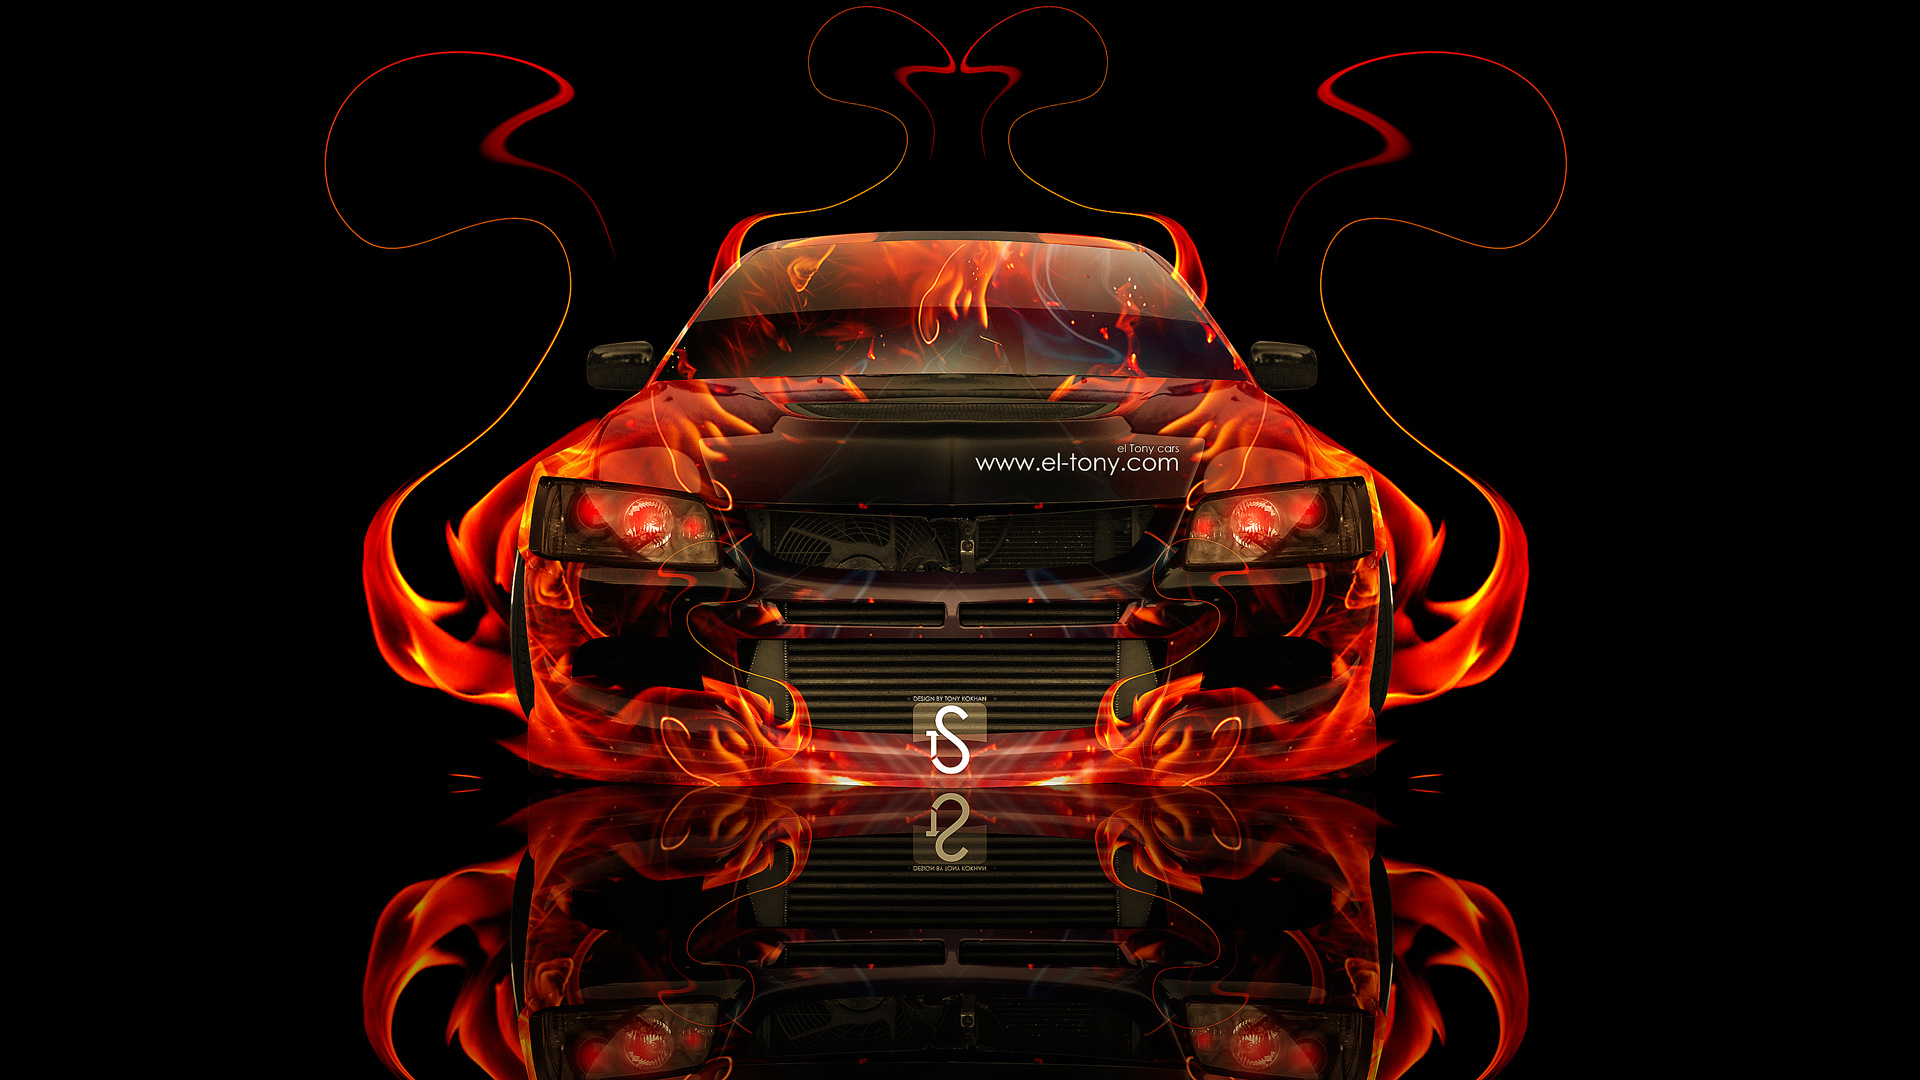 Apple Iphone 2g Wallpapers Mitsubishi Lancer Evolution 8 Jdm Fire Abstract Car 2013